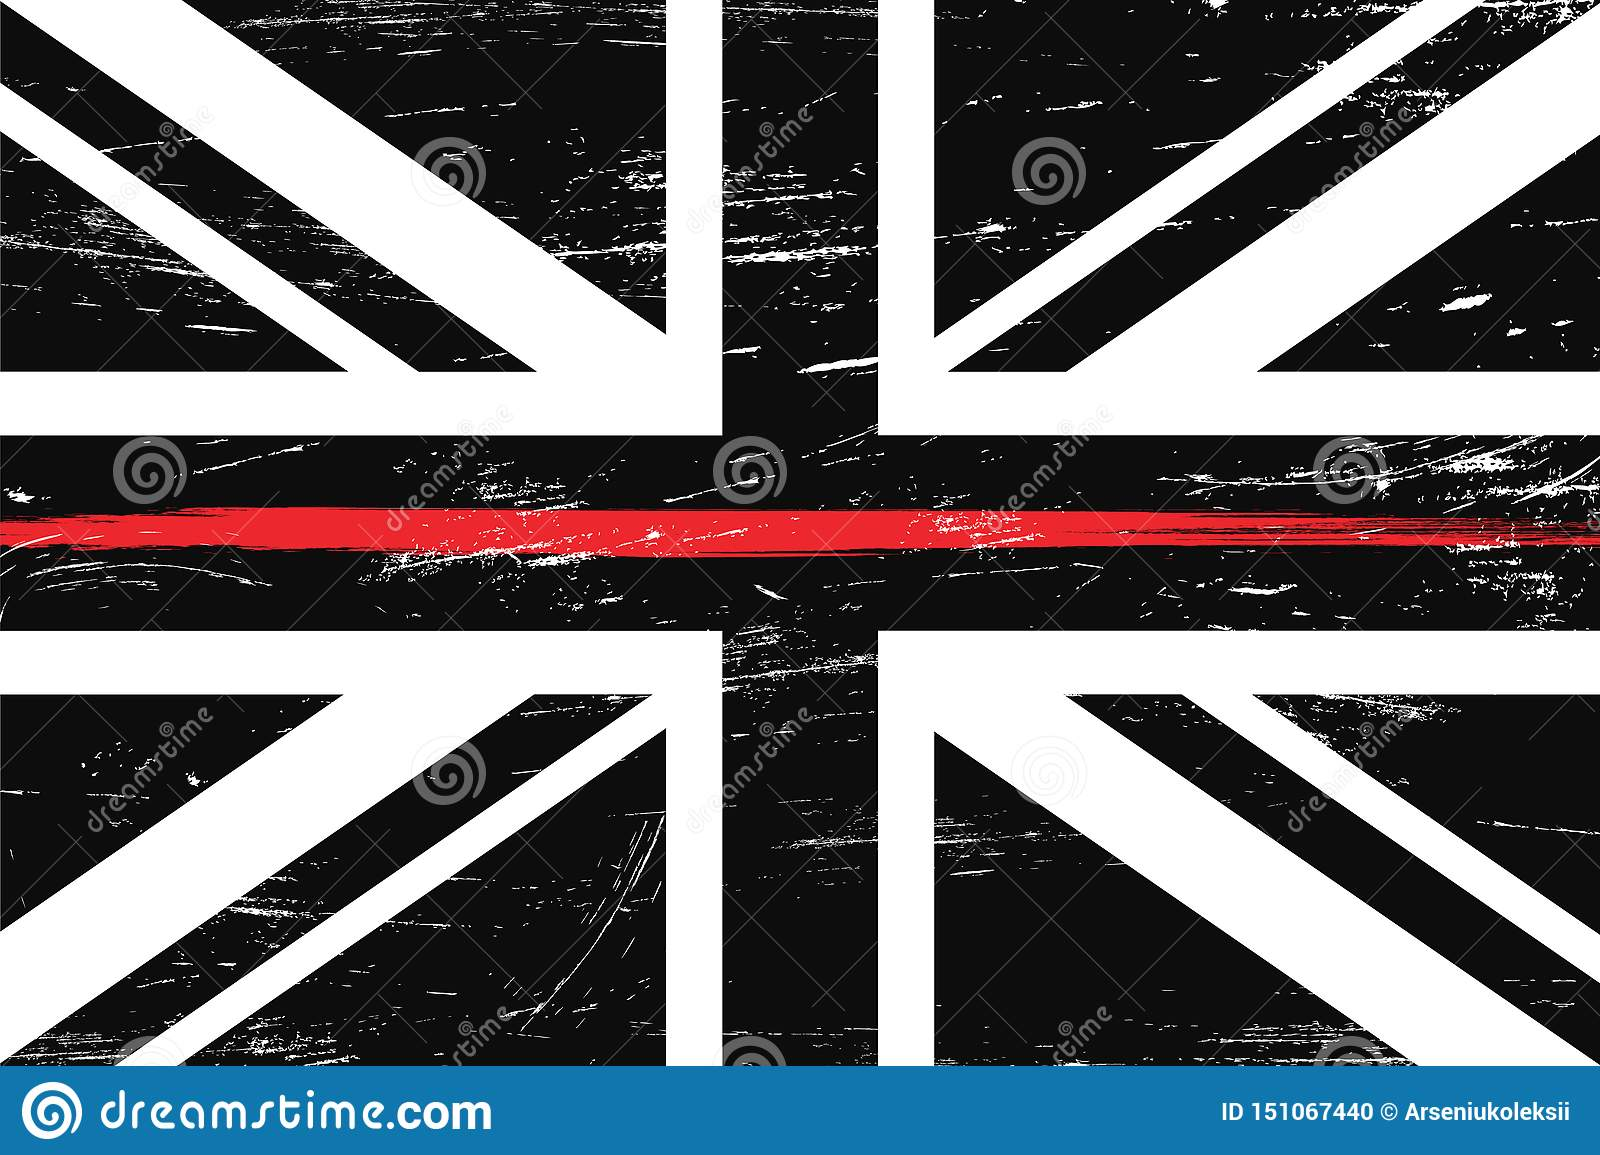 Grunge United Kingdom flag with a thin red line